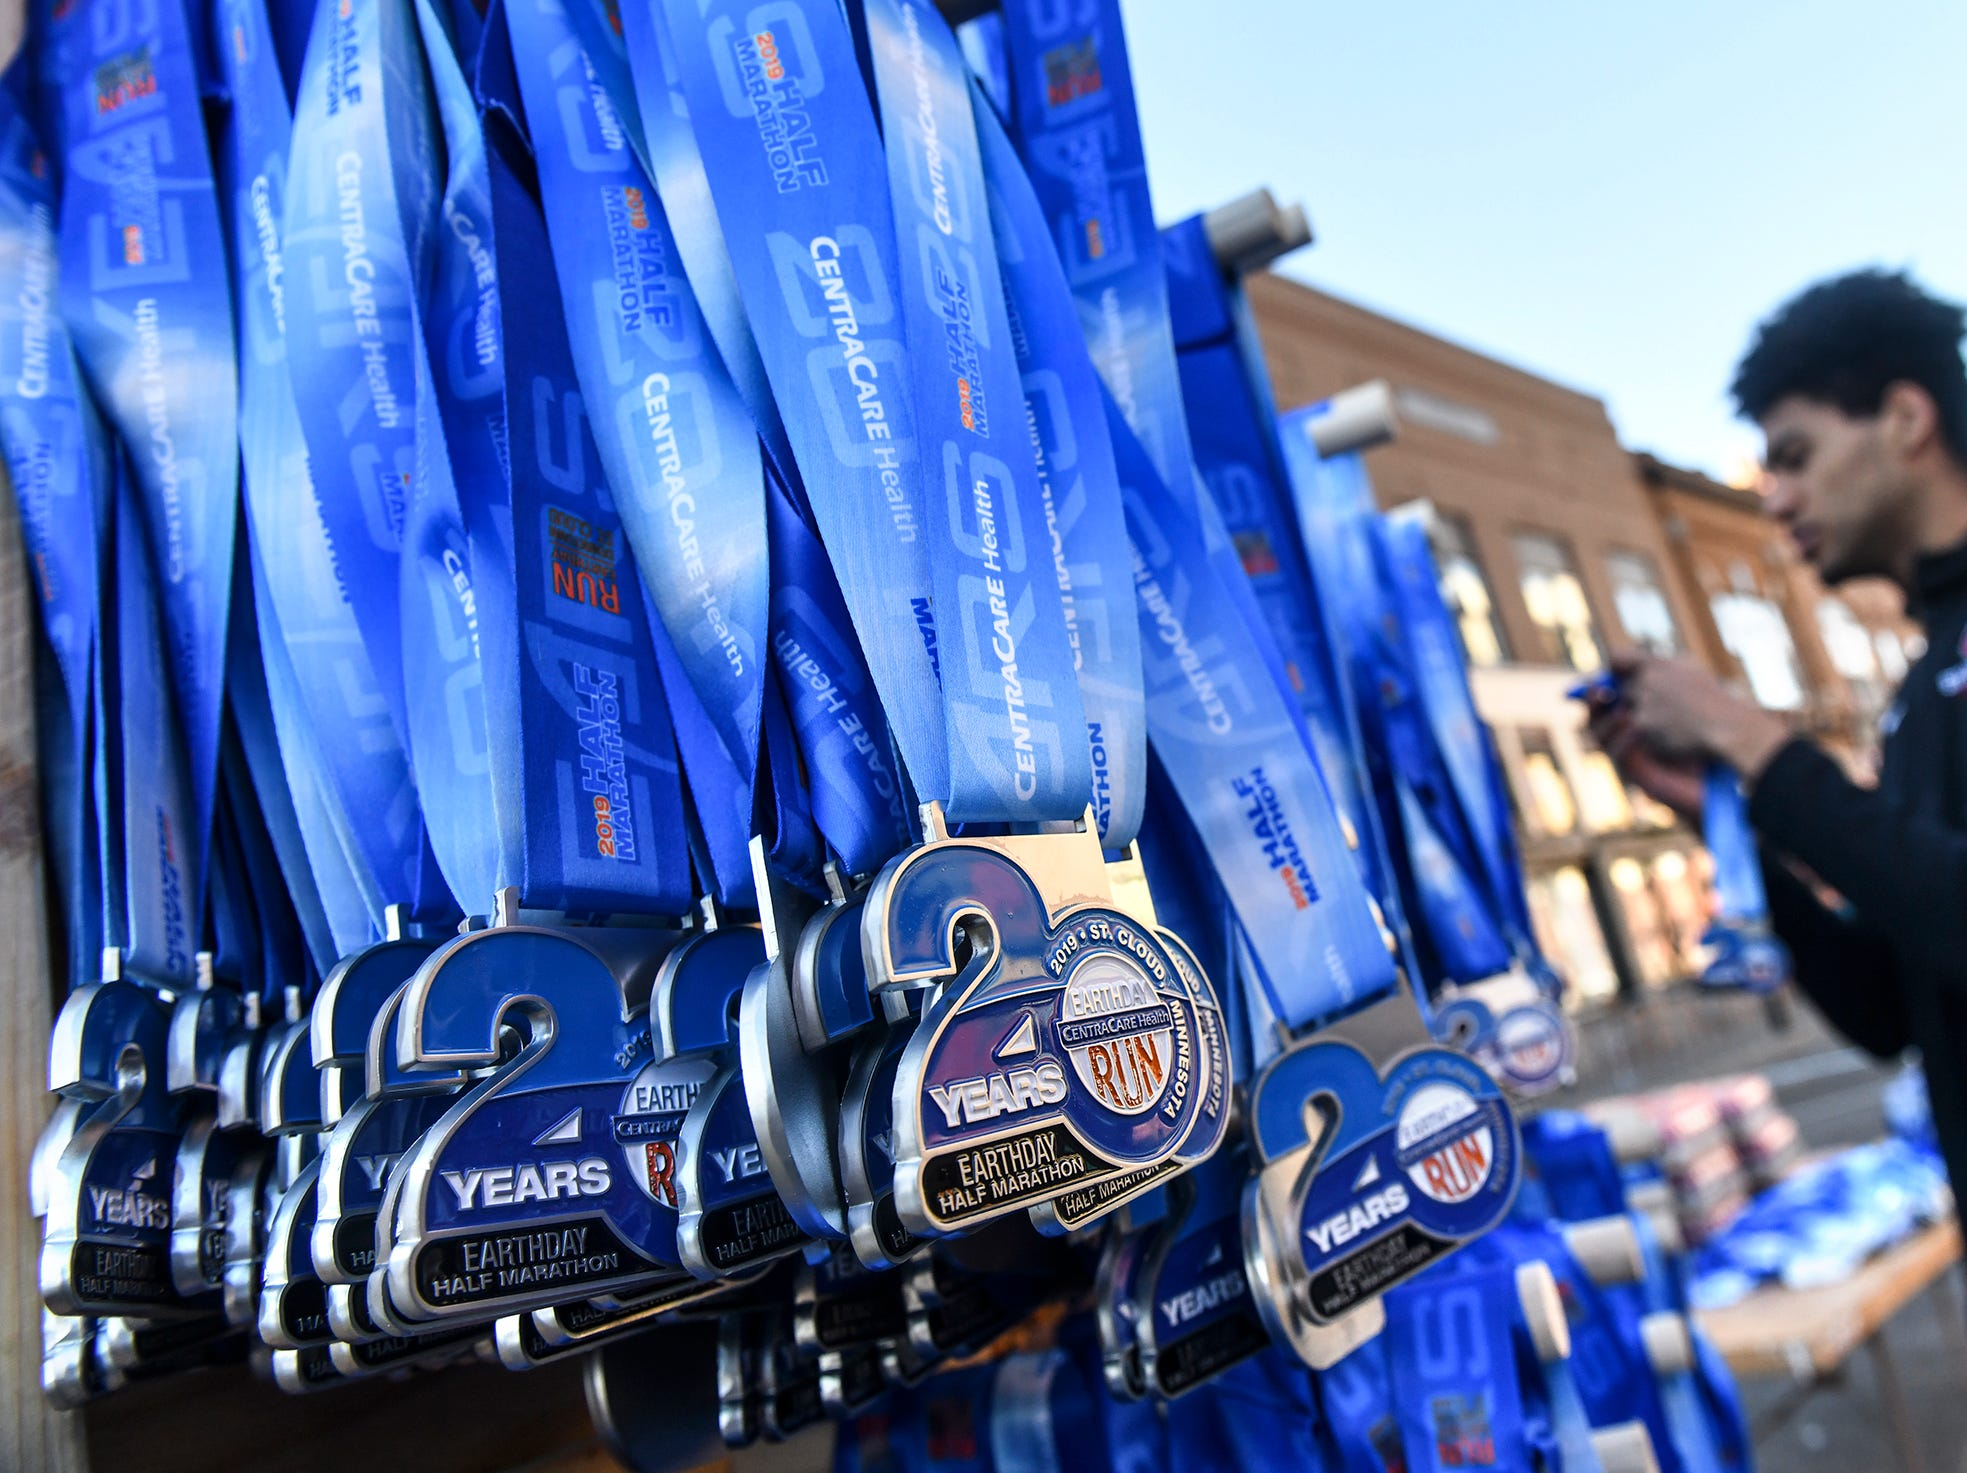 Volunteer Sean Smith arranges medals at the finish line during the Cetera Half Marathon as part of CentraCare Health Earth Day Run activities Saturday, April 20, in downtown St. Cloud.